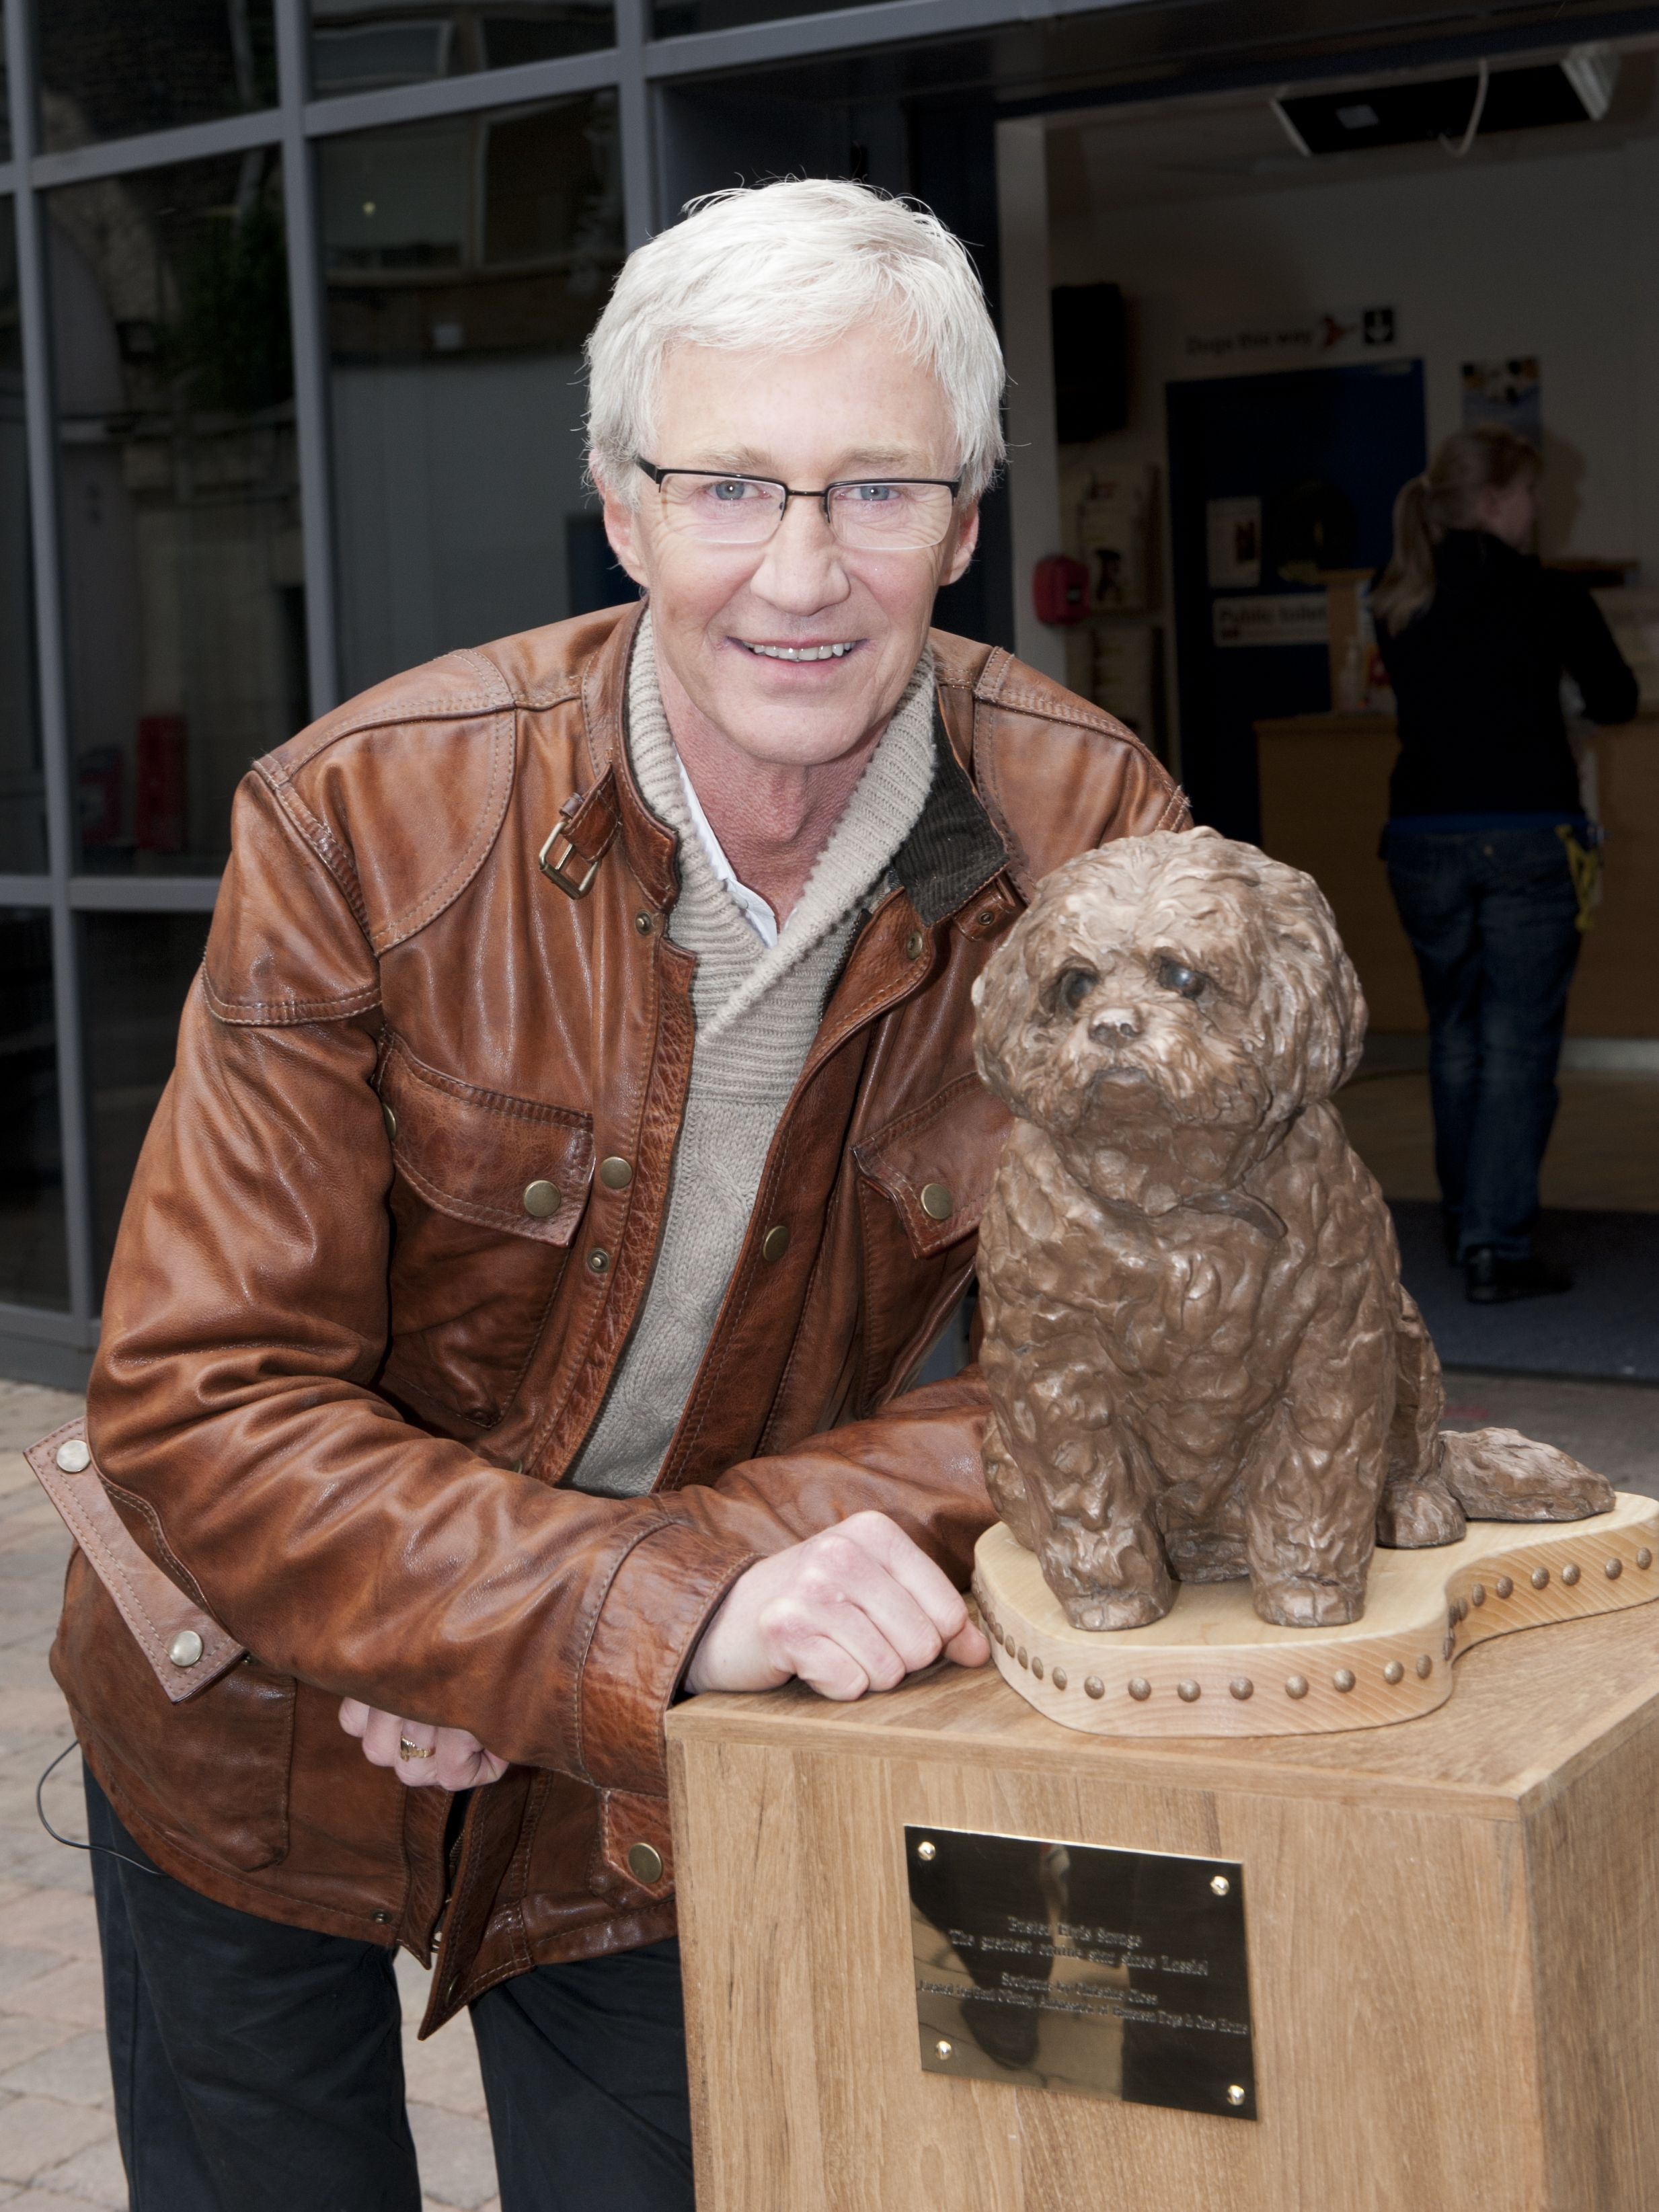 Paul With His Statue Of Buster Which Is On Display At Our London Site Http Www Battersea Org Uk About Us Paul O Gradys For T Battersea Dogs Dog Show Dog Cat